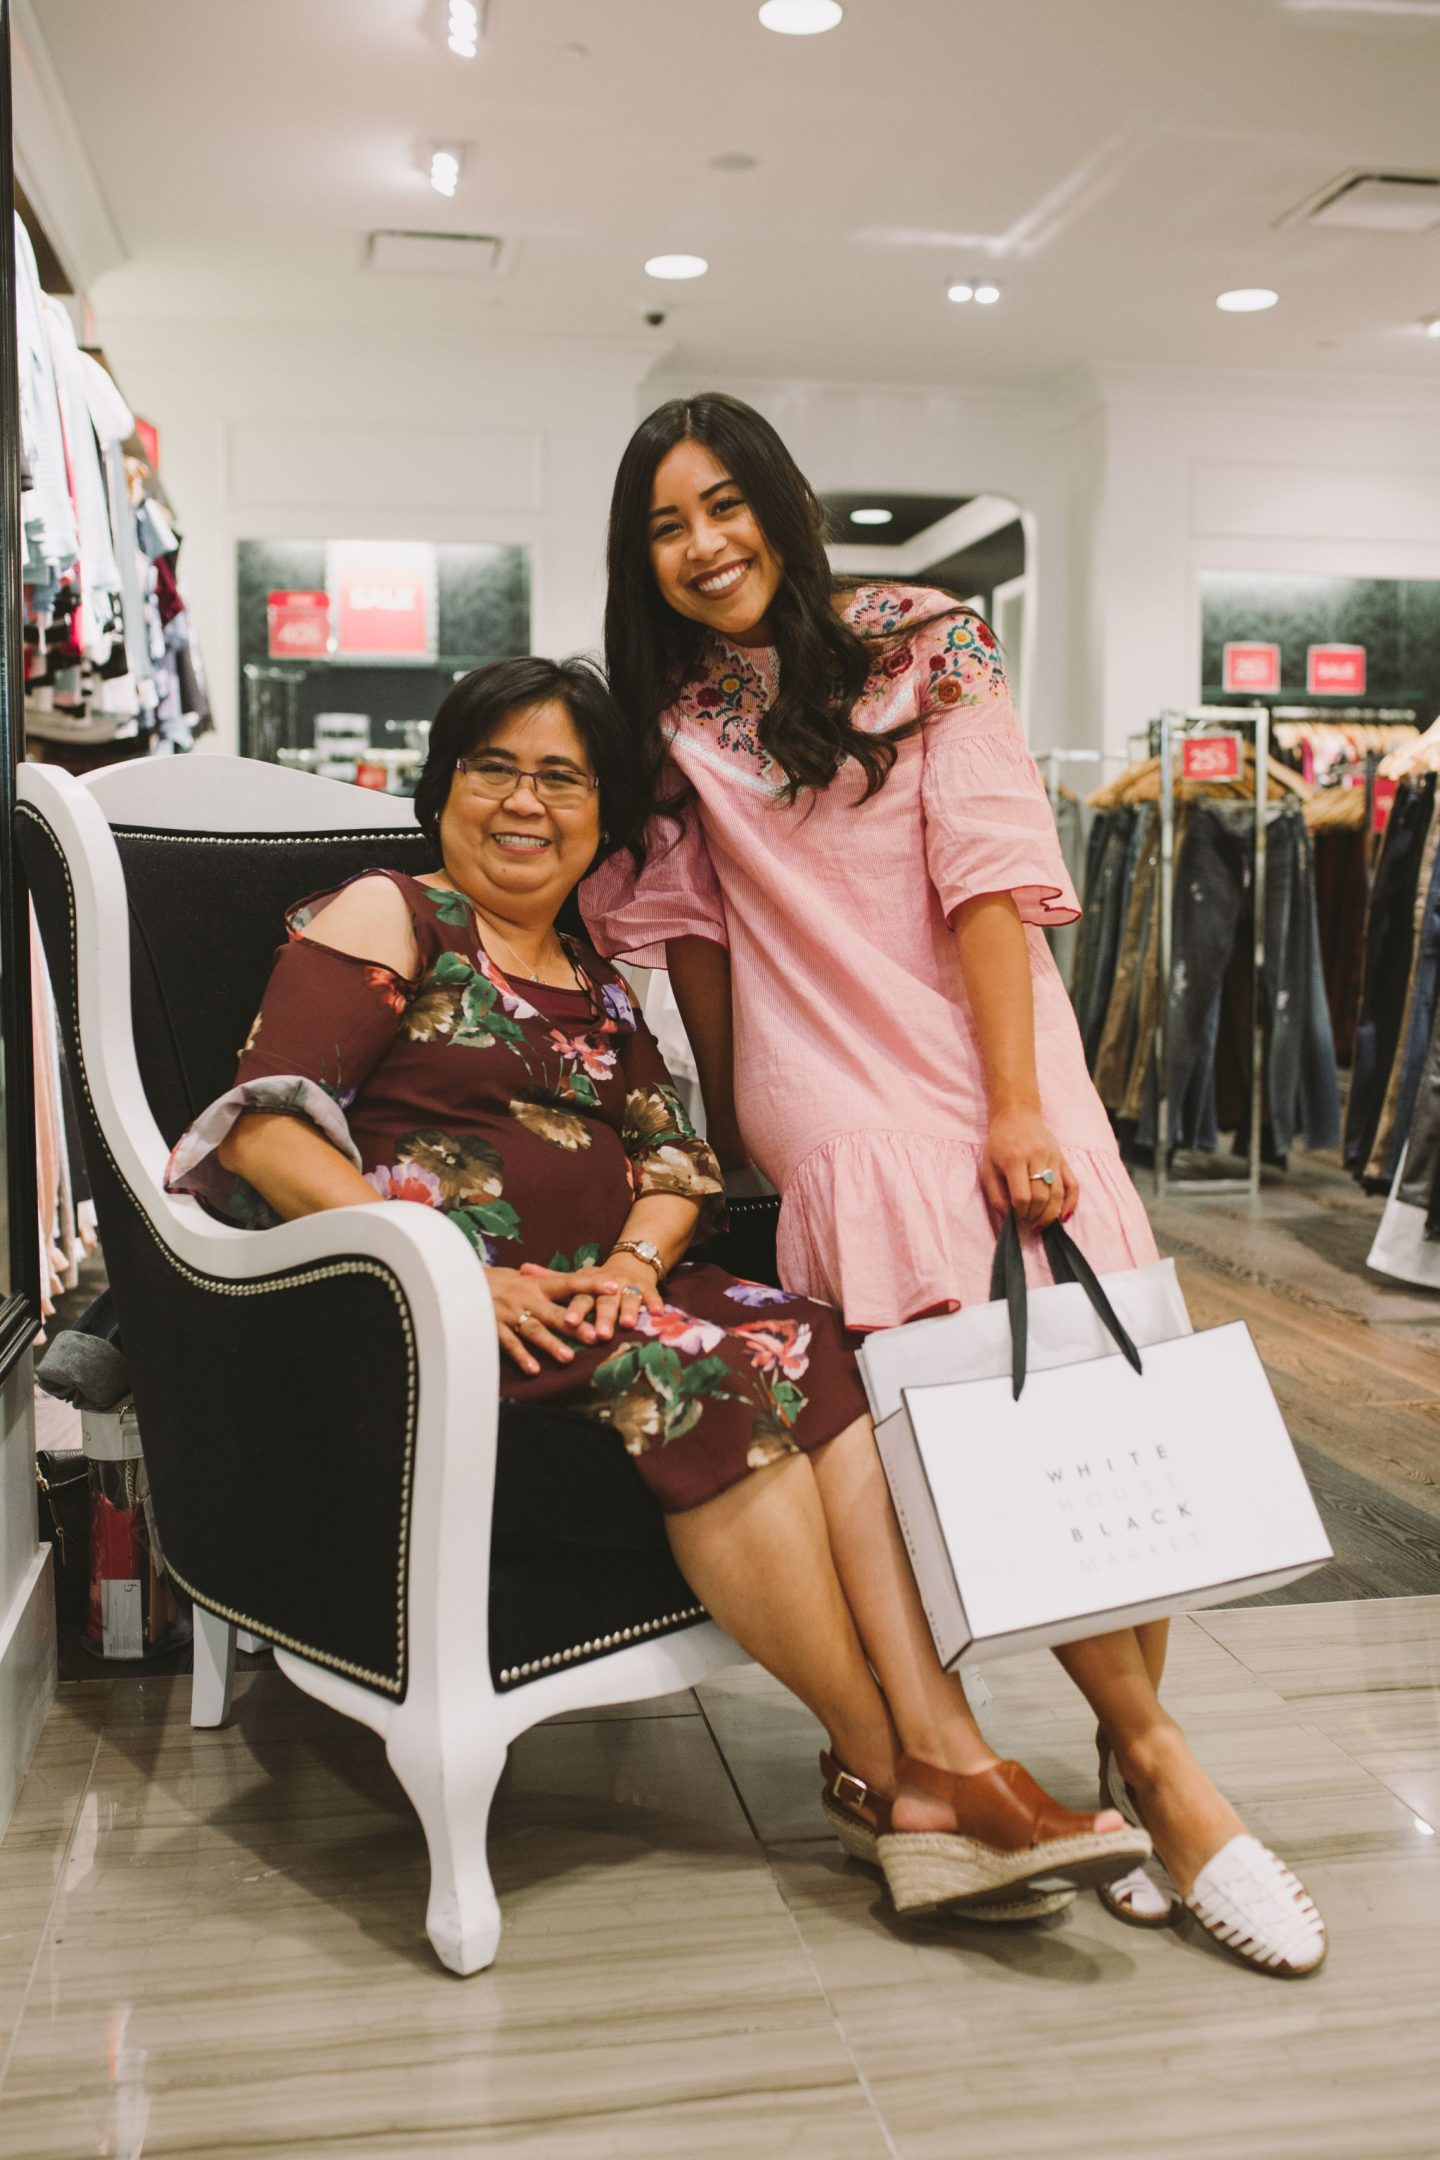 How to celebrate mother's day – mother's day ideas to celebrate – things to do on mother's day ideas – mother day ideas to celebrate – Tacoma mall – Simon Property Group – Simon Malls- Tacoma Shopping Centers- things to do for mother's day 2018 – mother's day activities